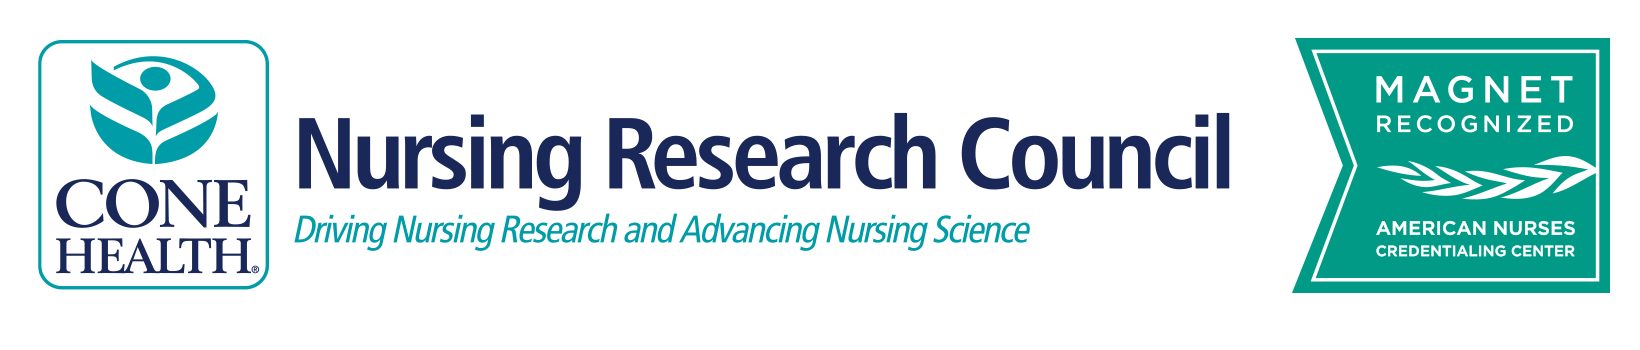 Nursing Research Council